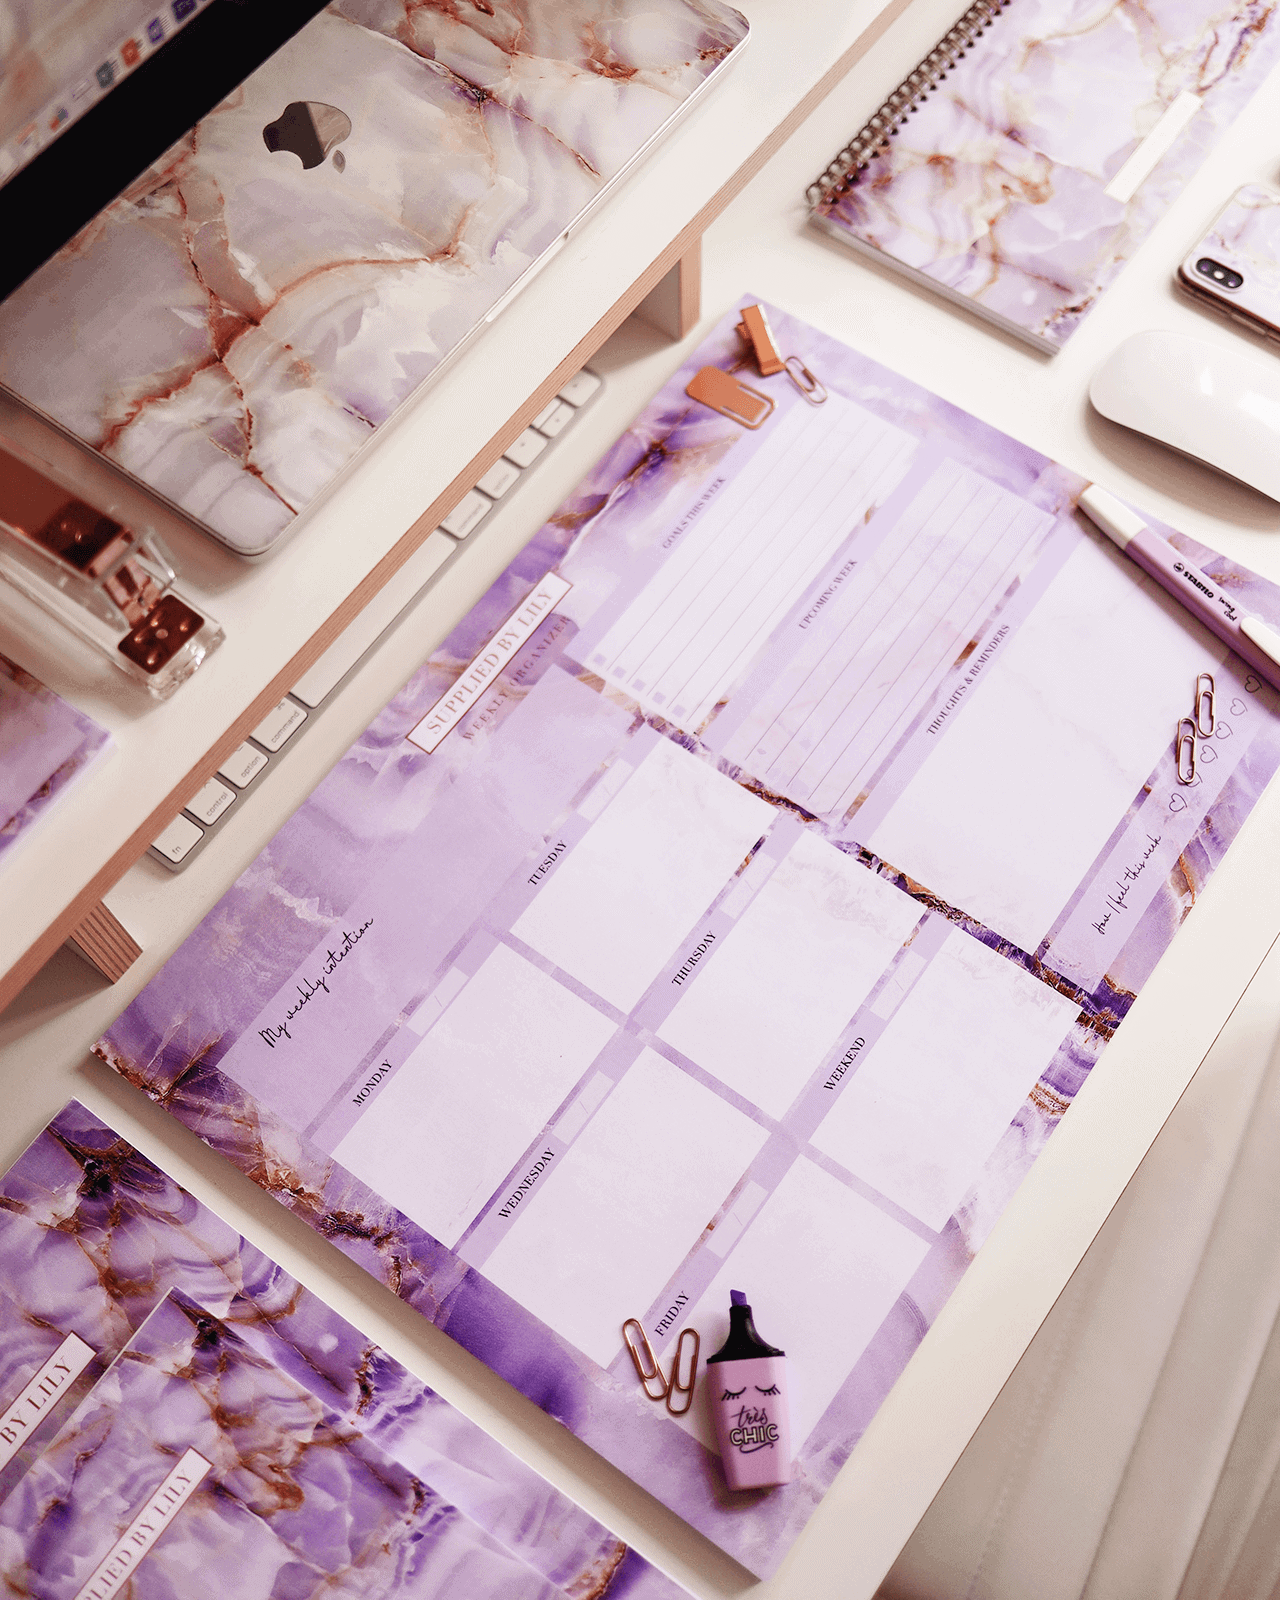 Supplied by Lily Desk Note Pad in Luxurious Amethyst